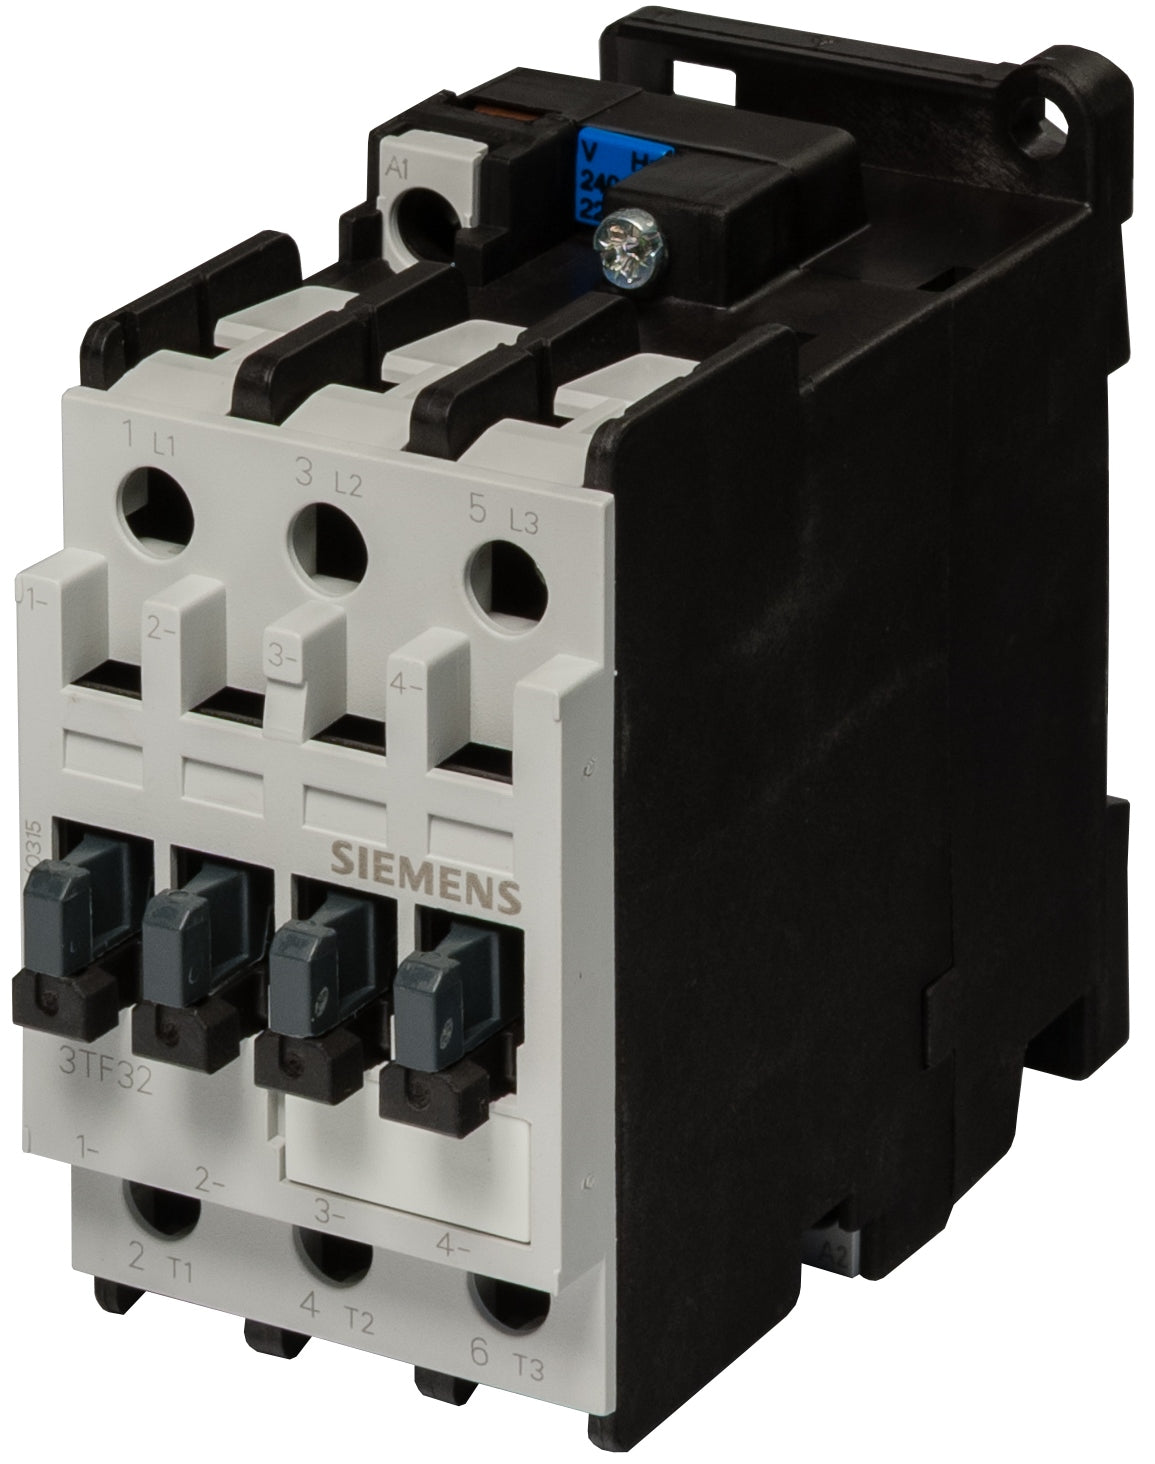 3tf3 Contactors Motor Starters Siemens 230v 3 Phase Contactor Wiring Starter Series Pole